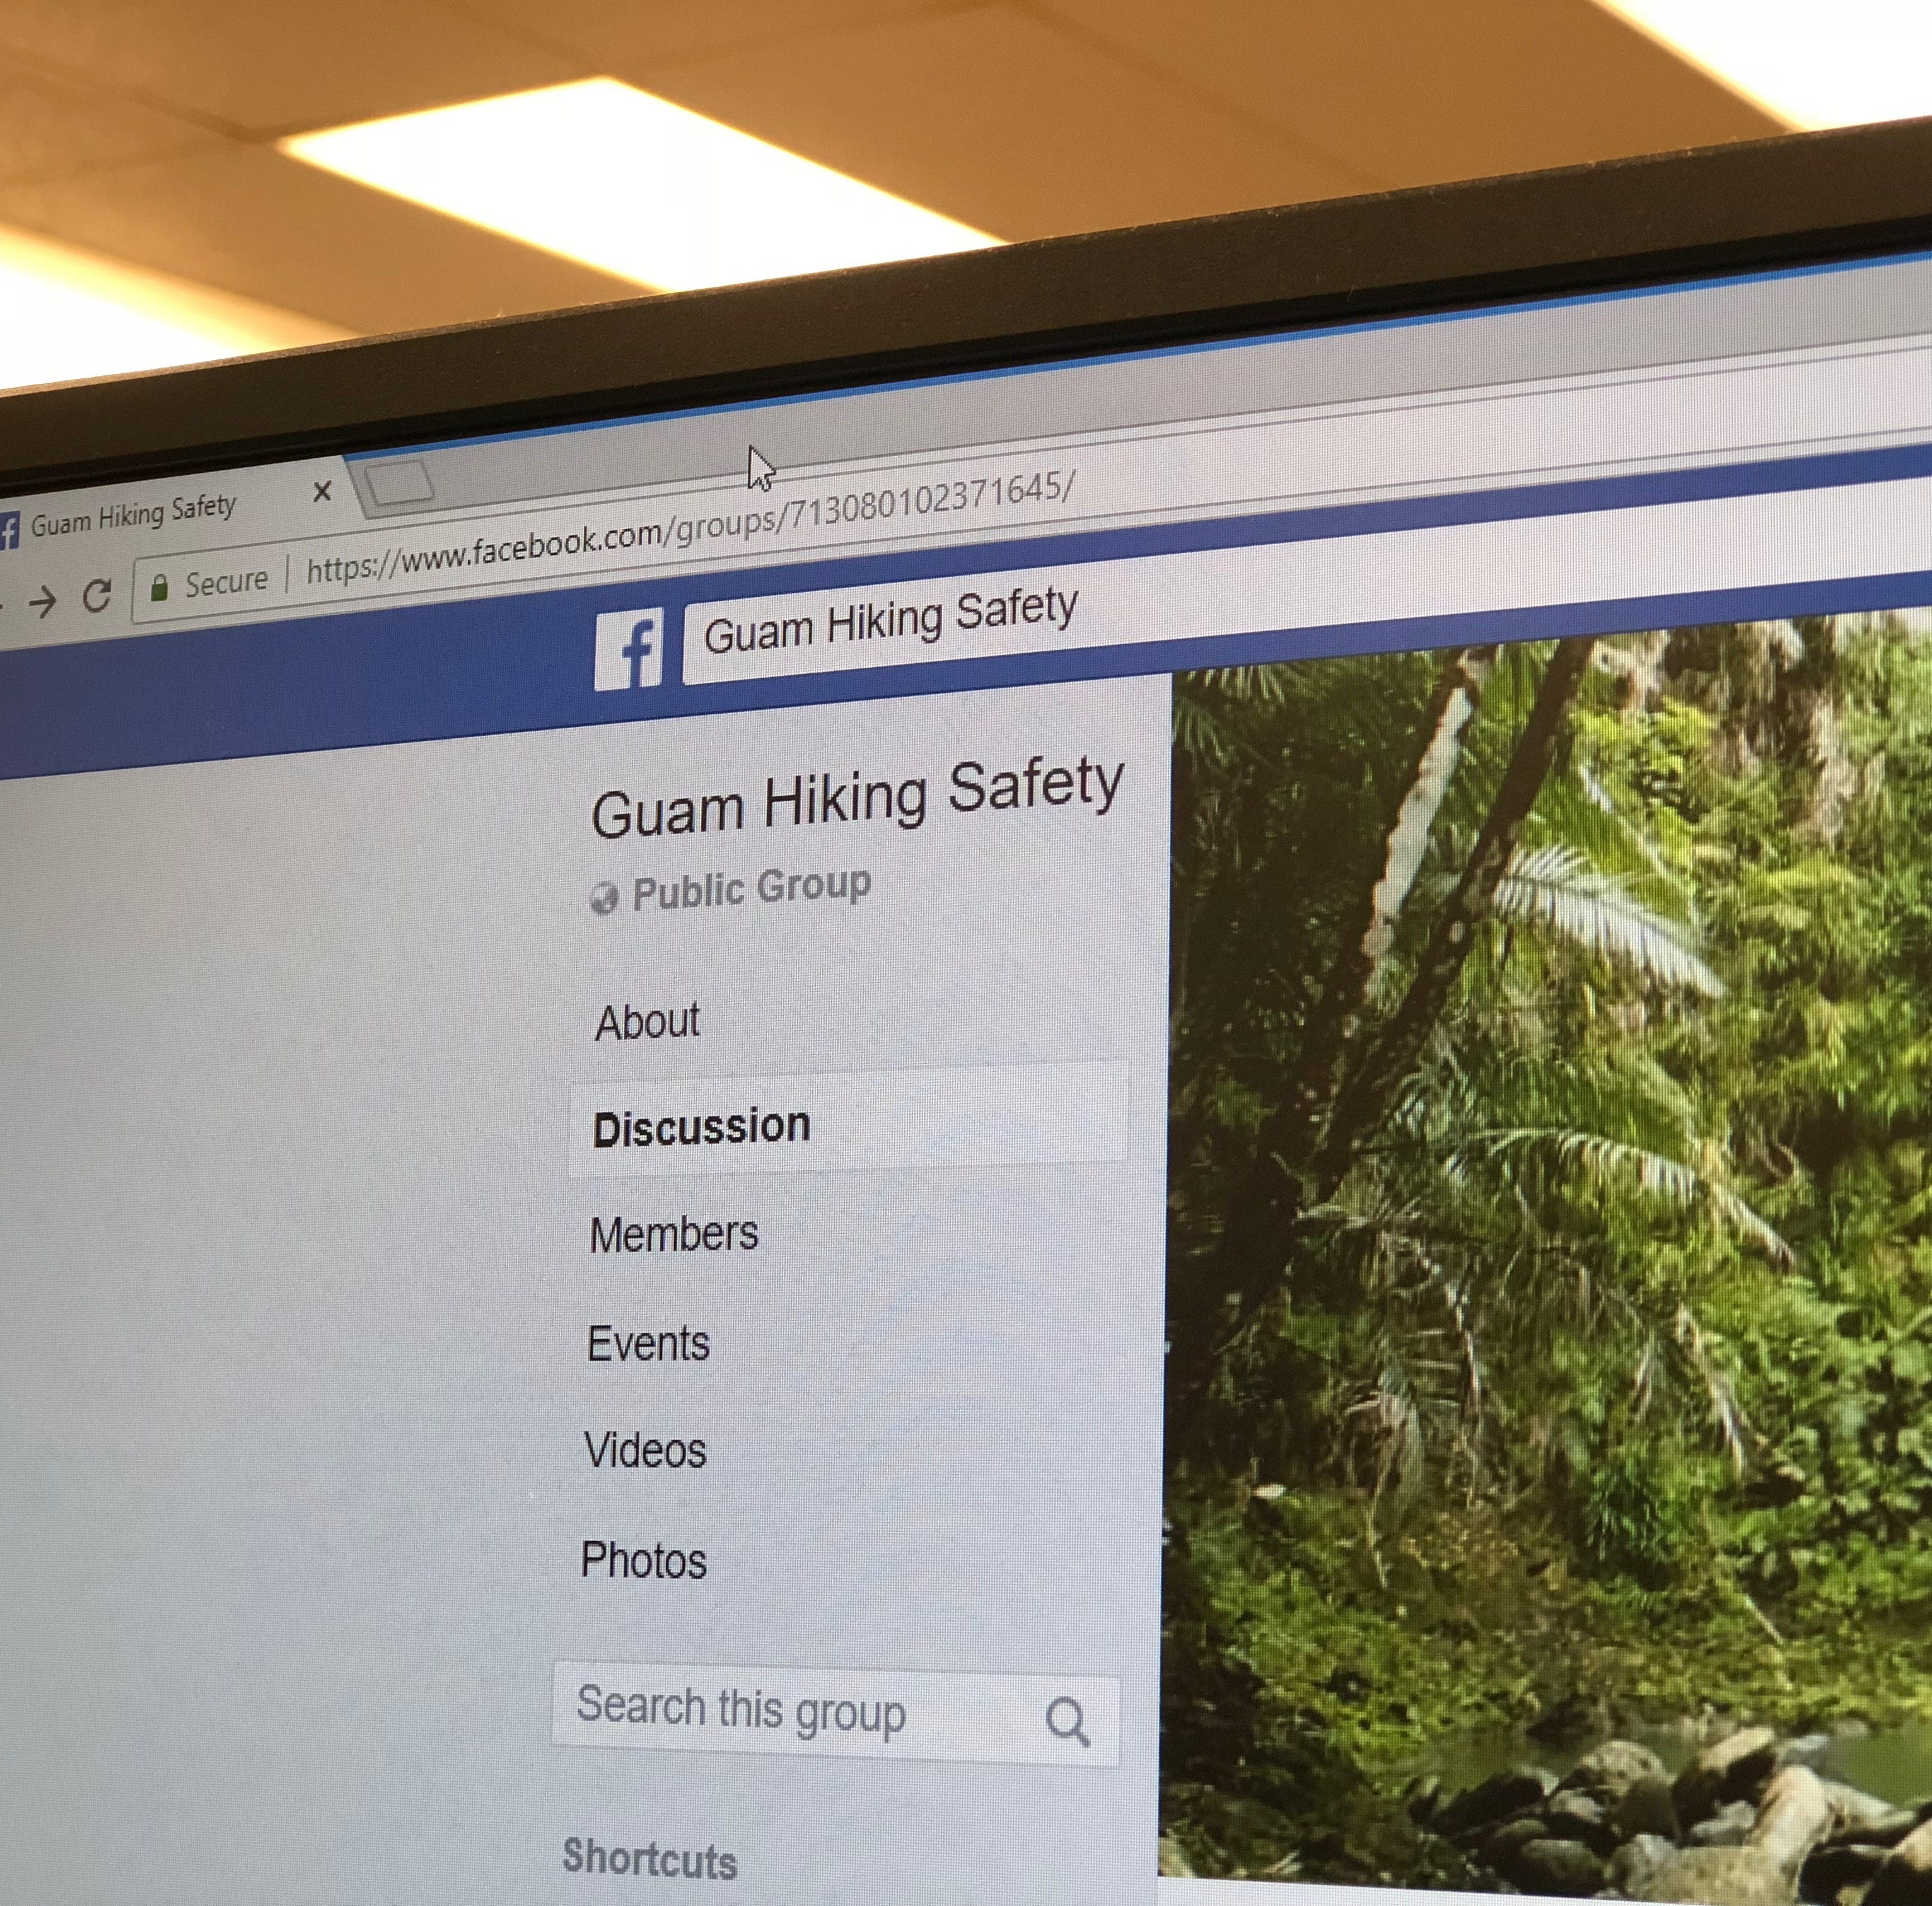 New Facebook group created on hiking safety in wake of tragedy